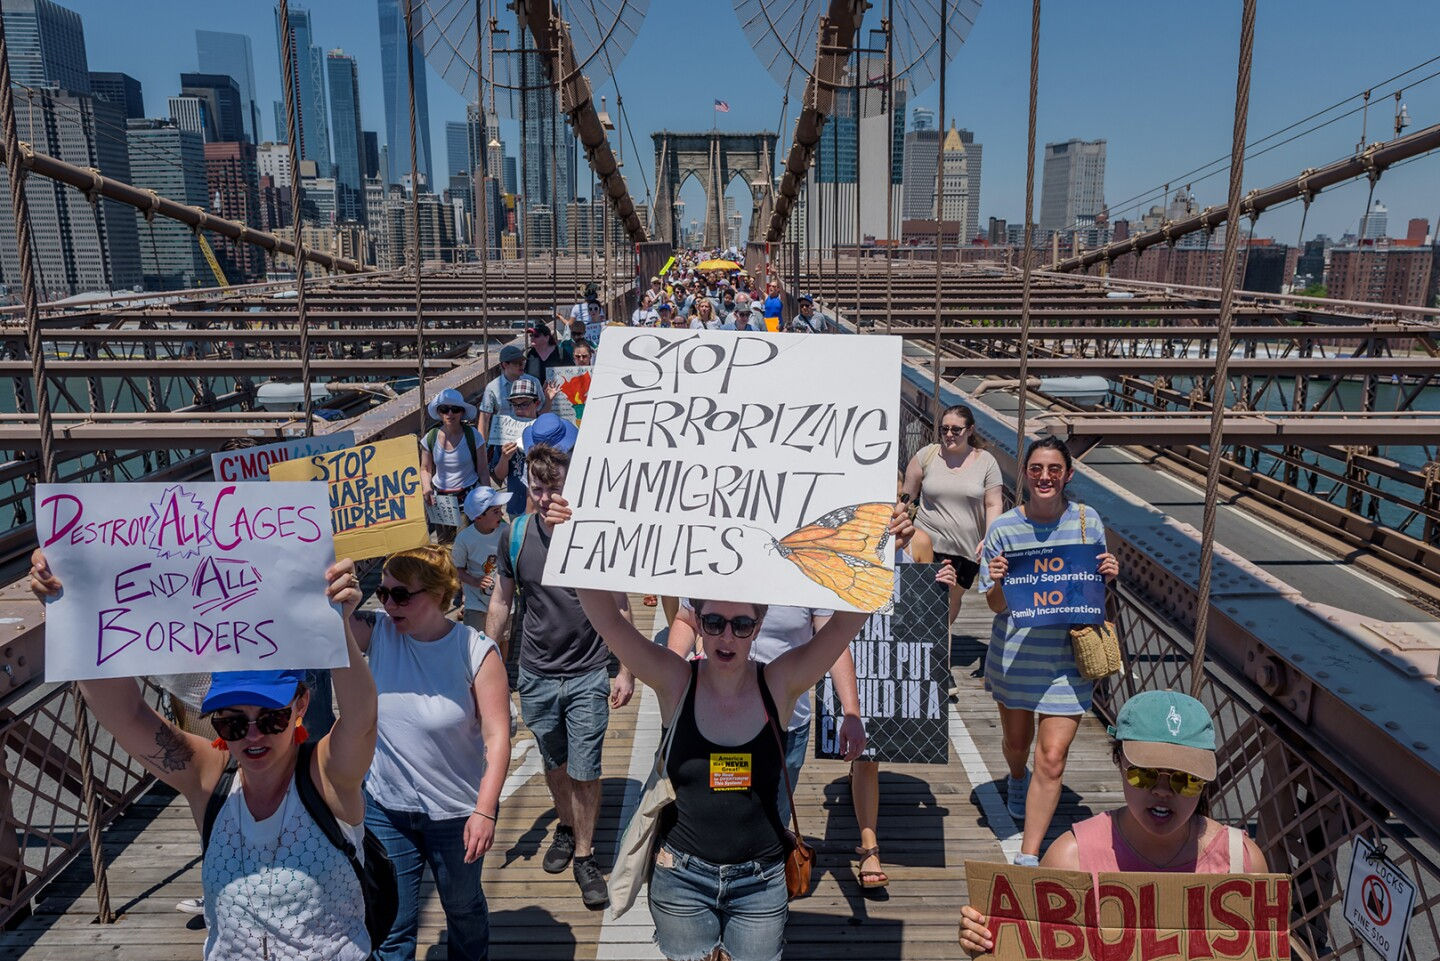 About 15 thousand New Yorkers marched in support of immigrant families to condemn the Trump administrations zero-tolerance policies on June 30, 2018.